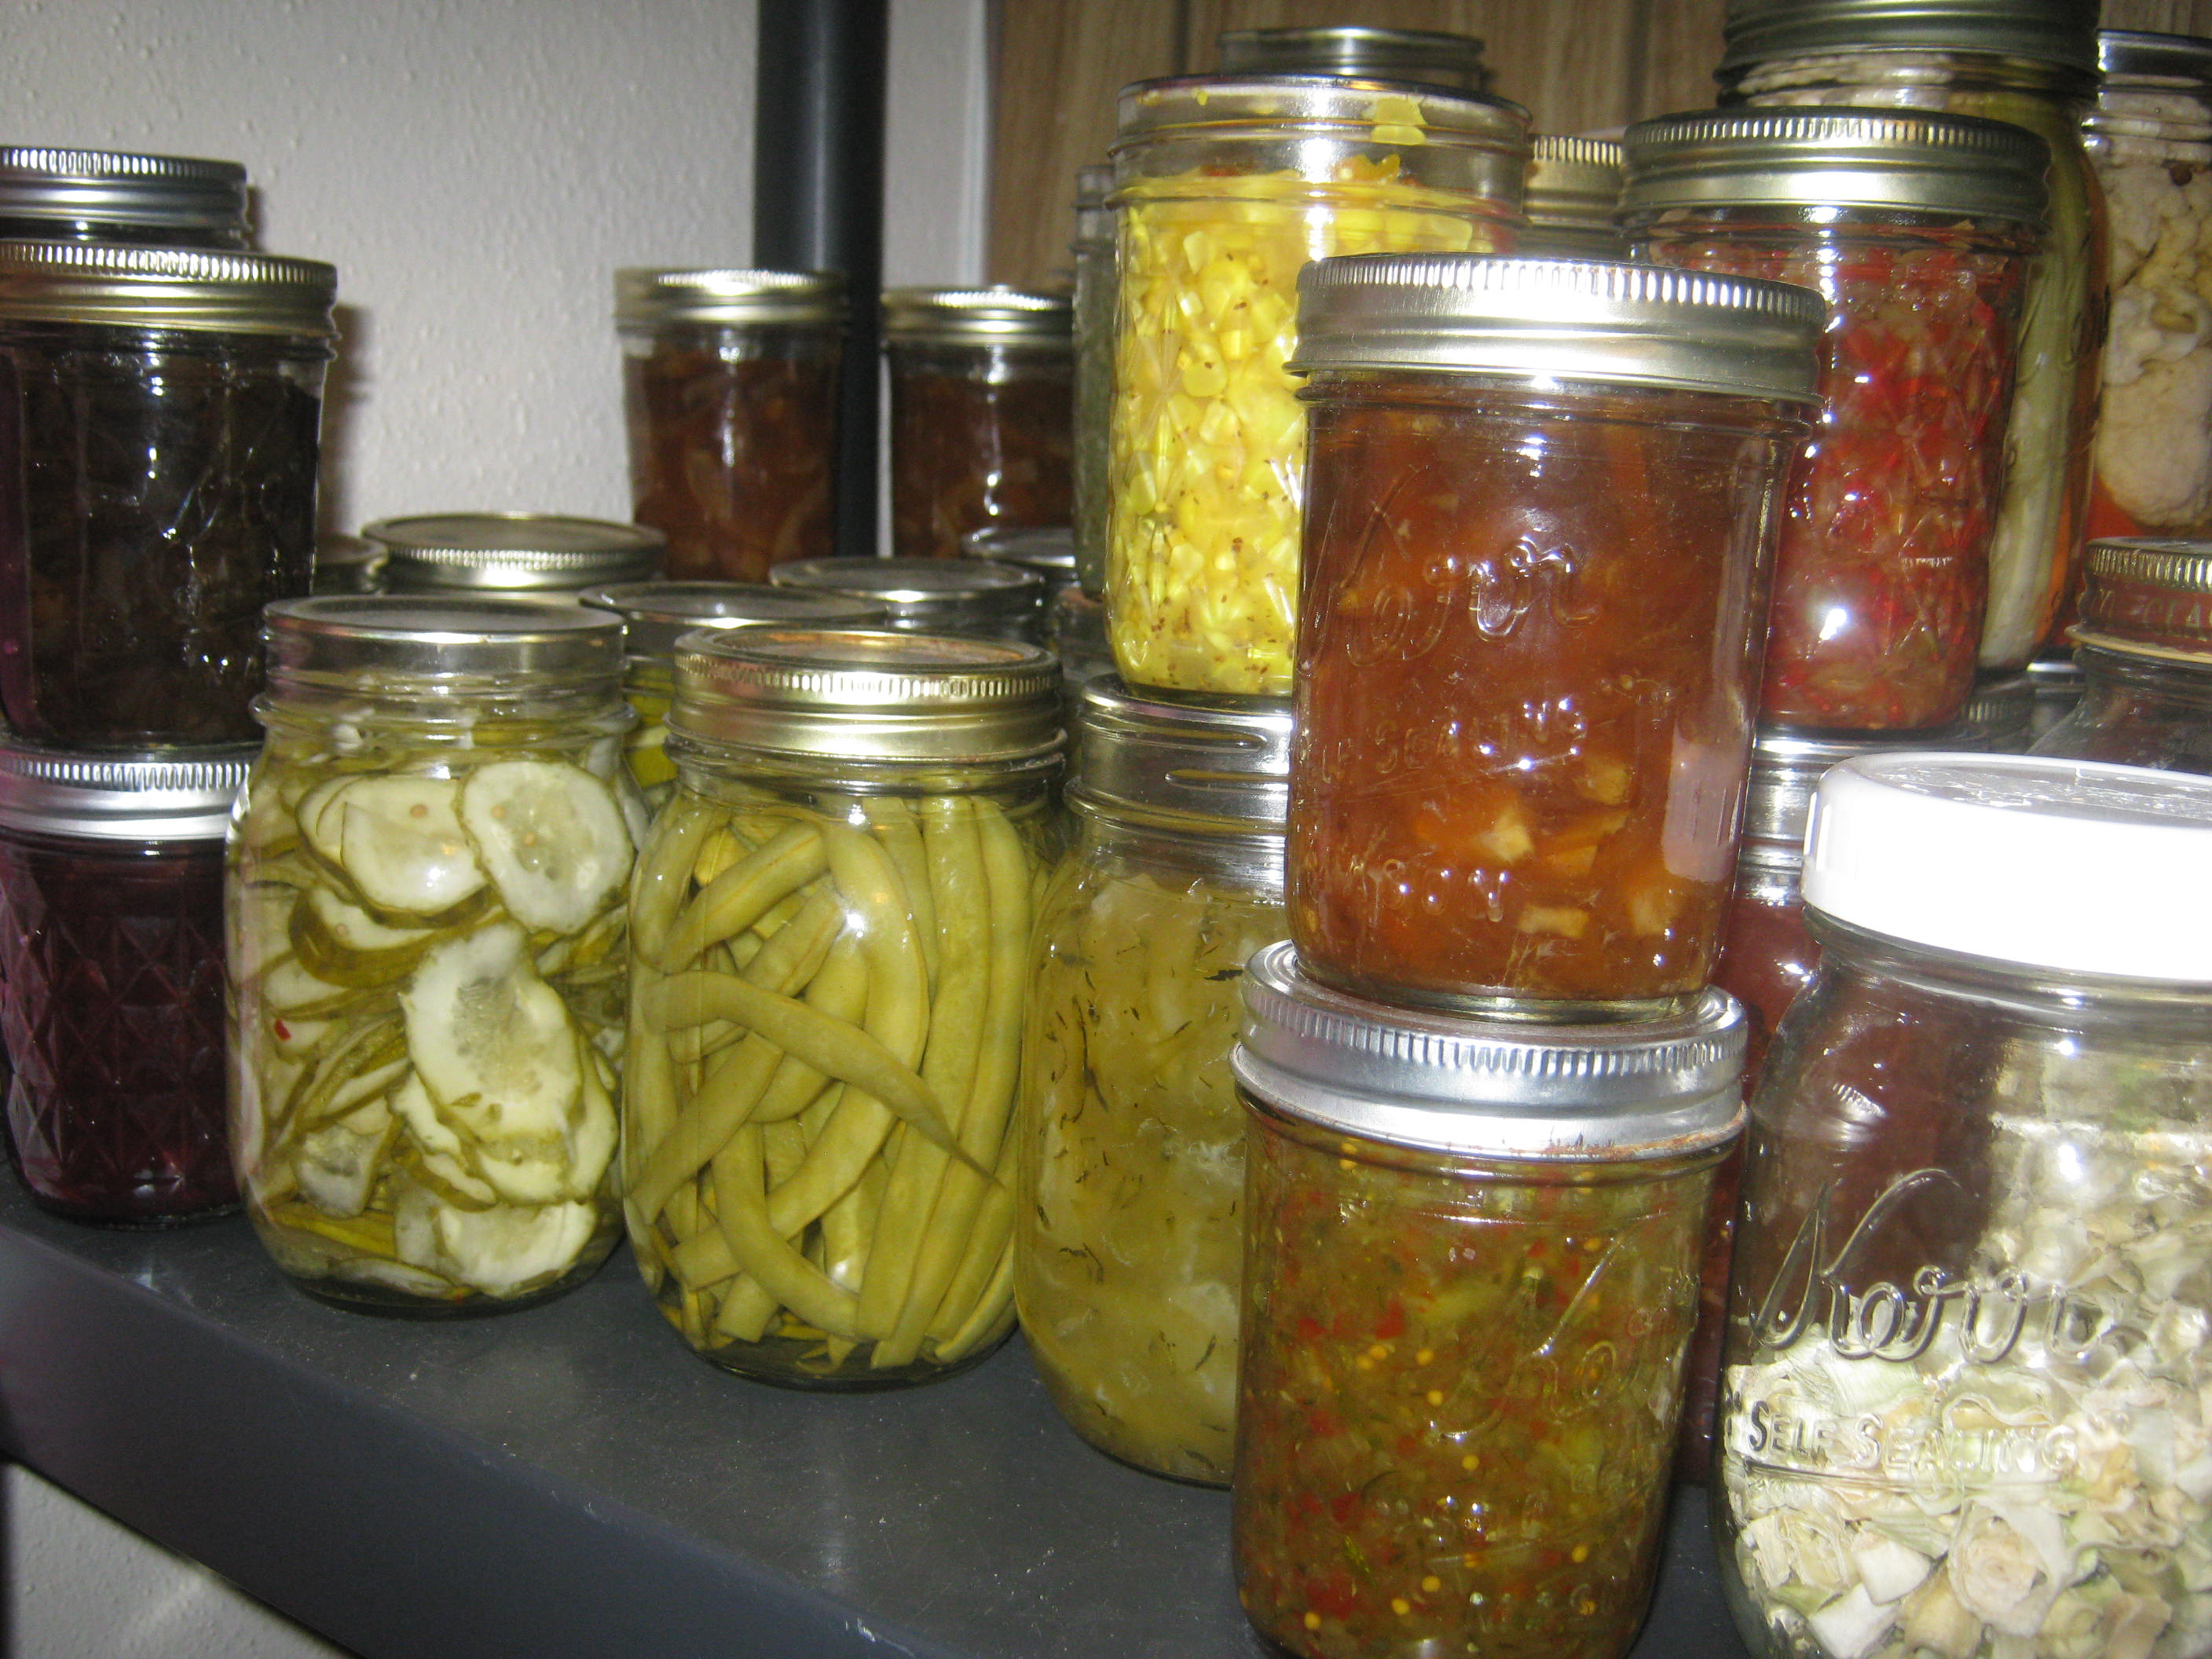 Food Recipe Preservation Google Image Result For Http Theinnovationdiaries